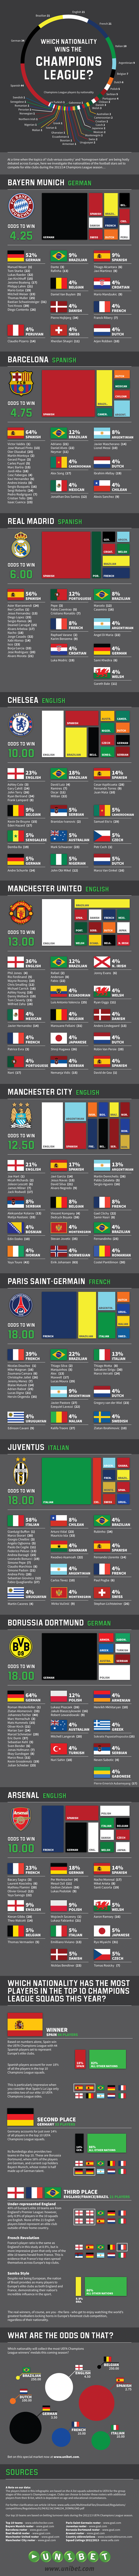 nationalities,sports,soccer,champions league